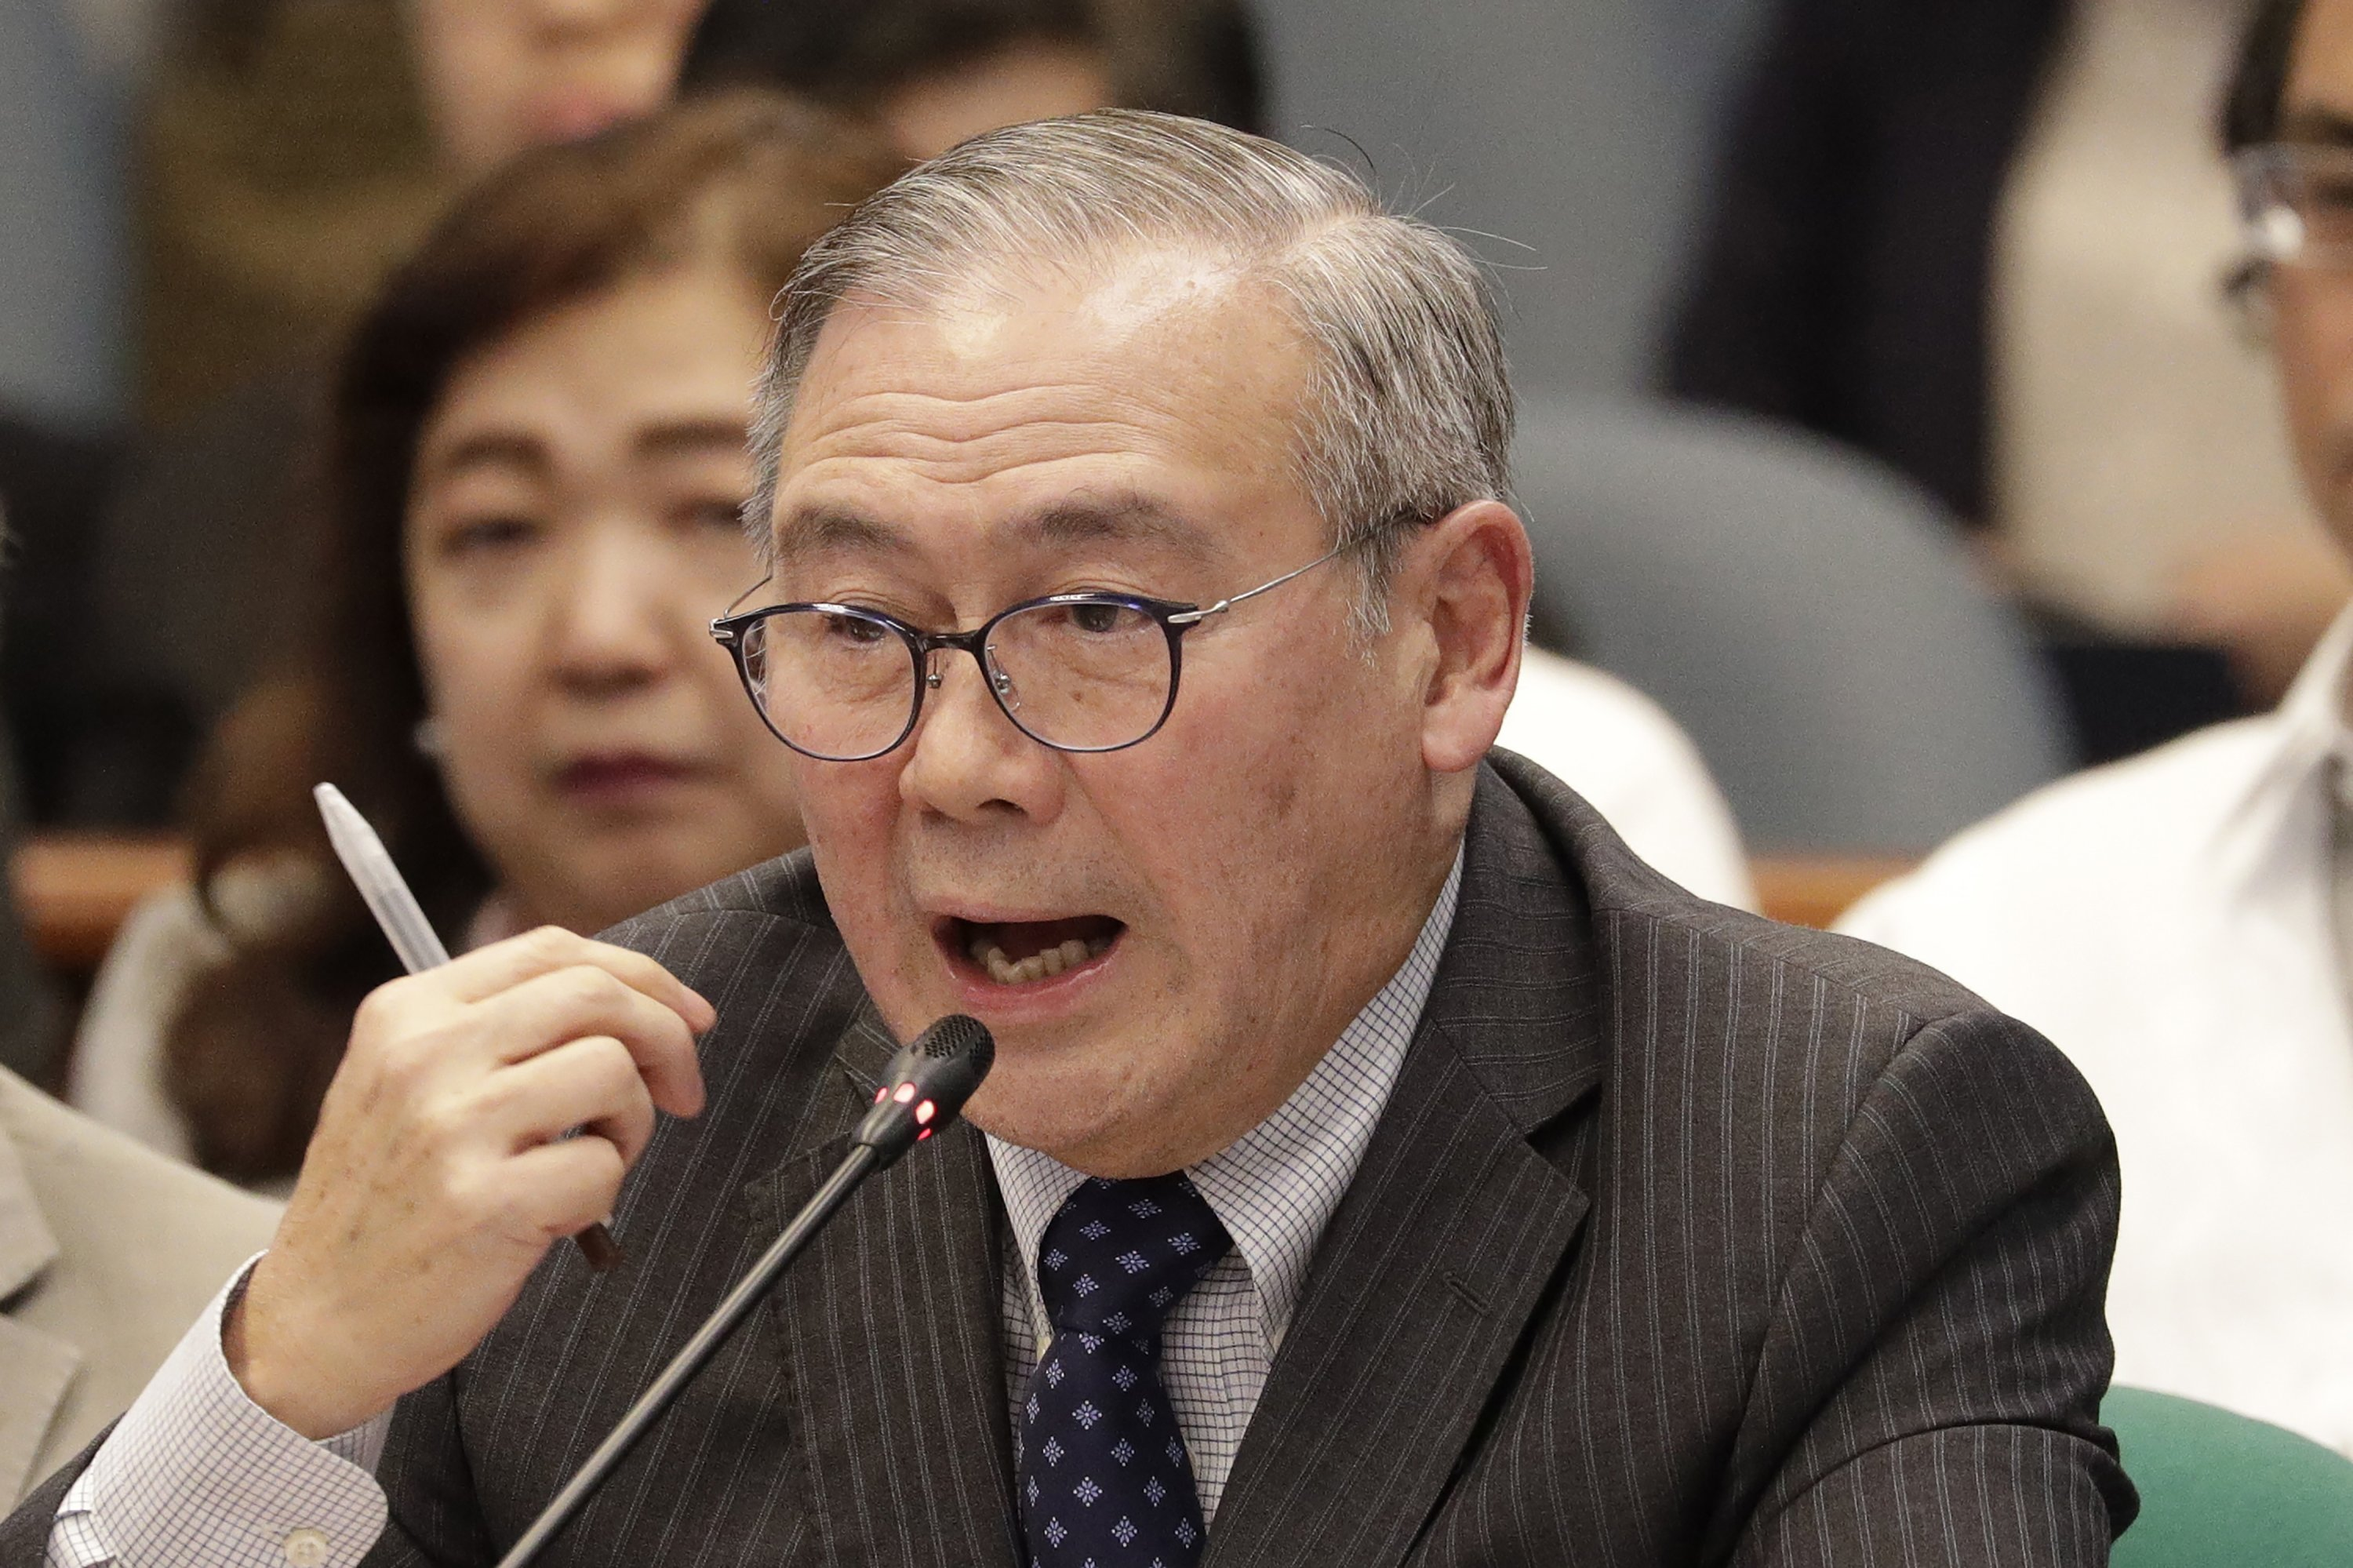 Philippine Secretary of Foreign Affairs Teodoro Locsin Jr. gestures during a senate hearing in Manila, Philippines, Feb. 6, 2020. (AP Photo)